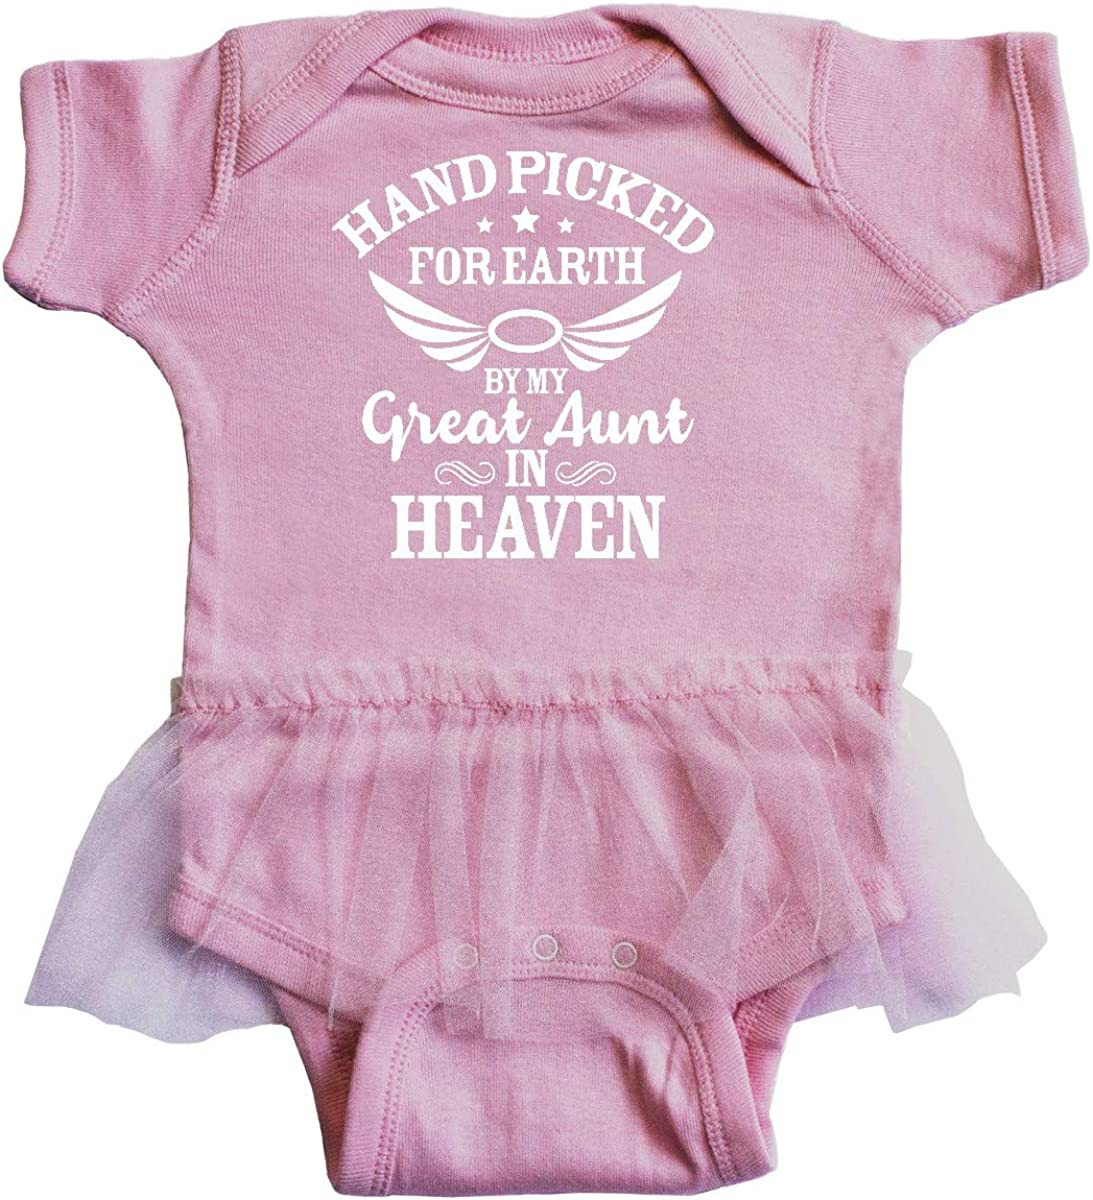 inktastic Handpicked for Earth by My Great Aunt in Heaven Infant Tutu Bodysuit